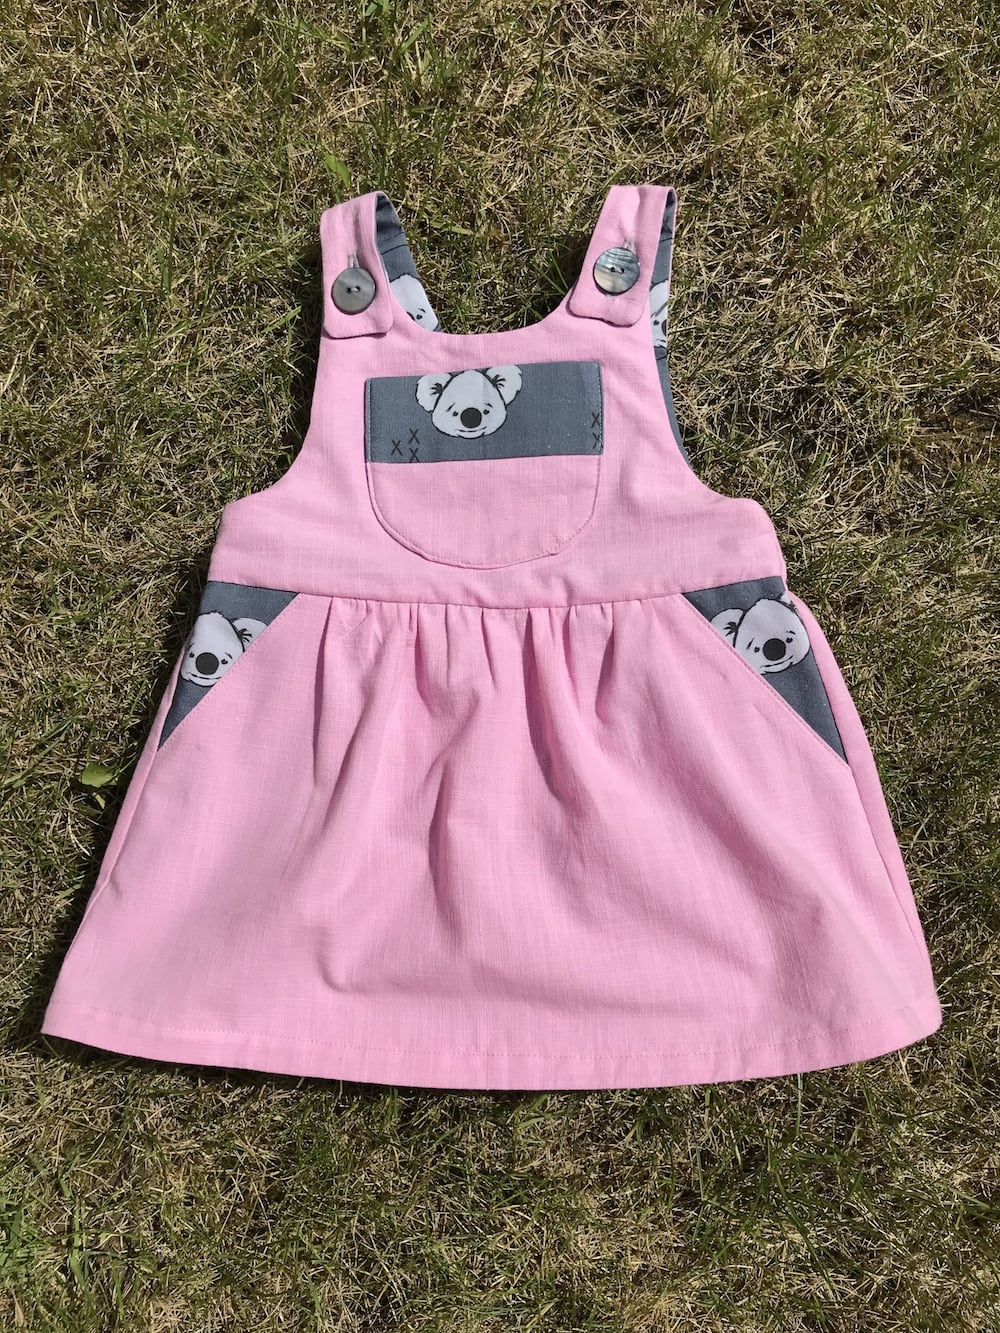 Puperita Lil Critters Pinafore Dress 3 month old baby girl.jpg